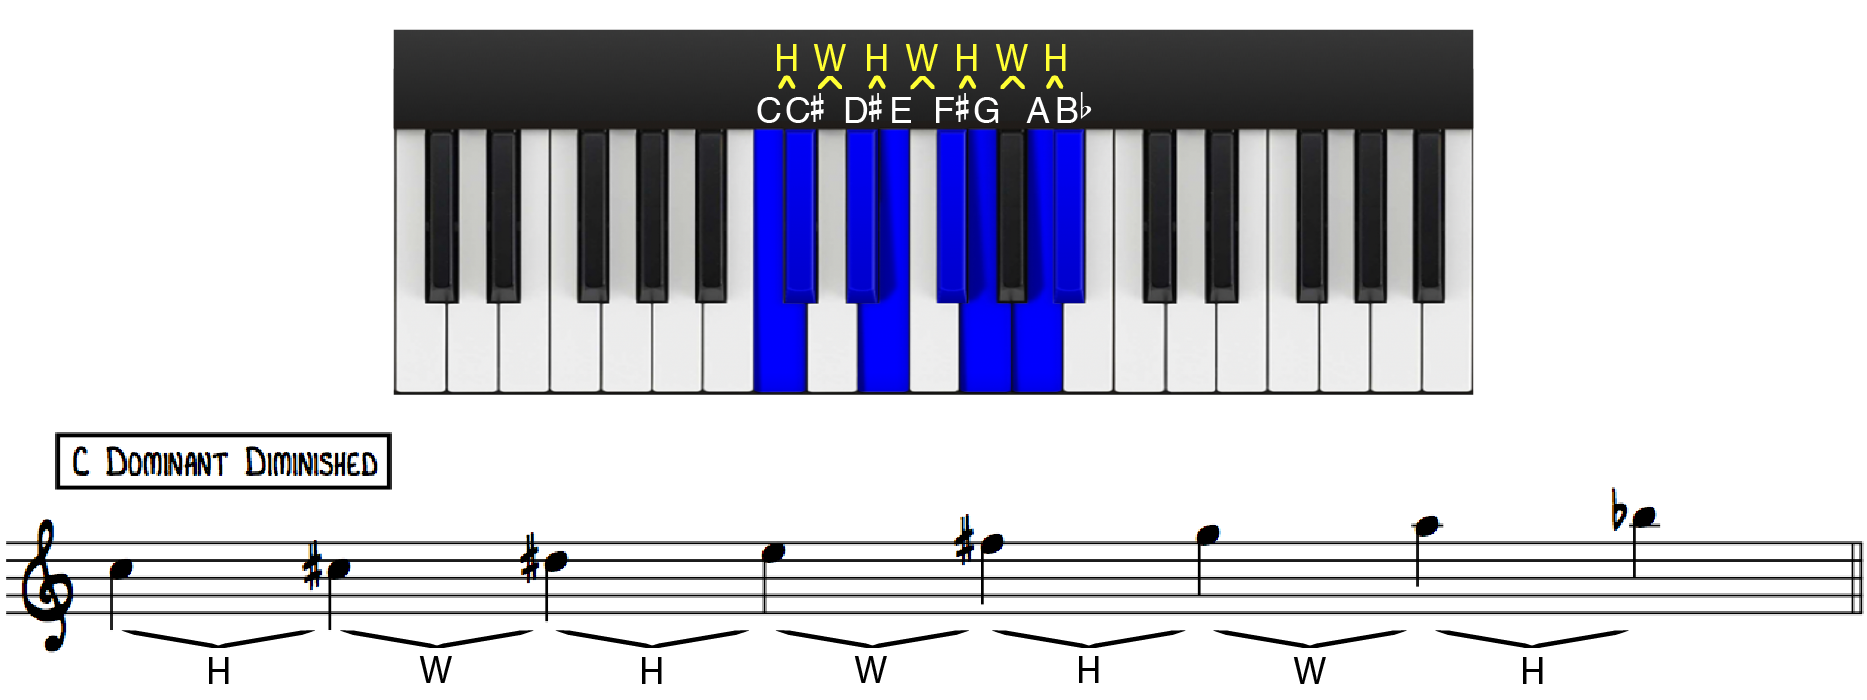 Dominant Diminished Scale Construction